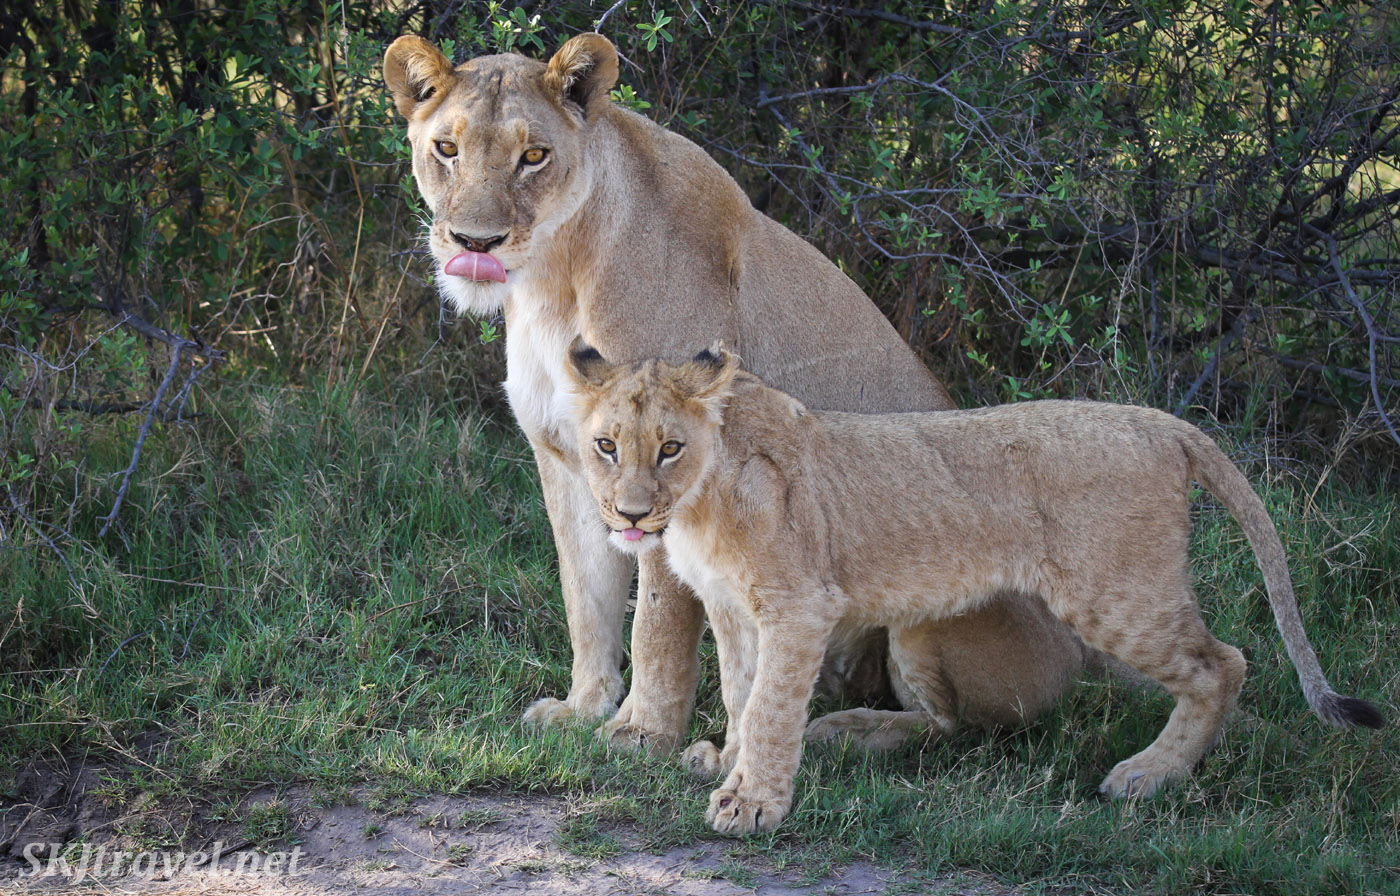 Lion cub and lioness sticking their tongues out at the same time. Khwai Concessions, Botswana.